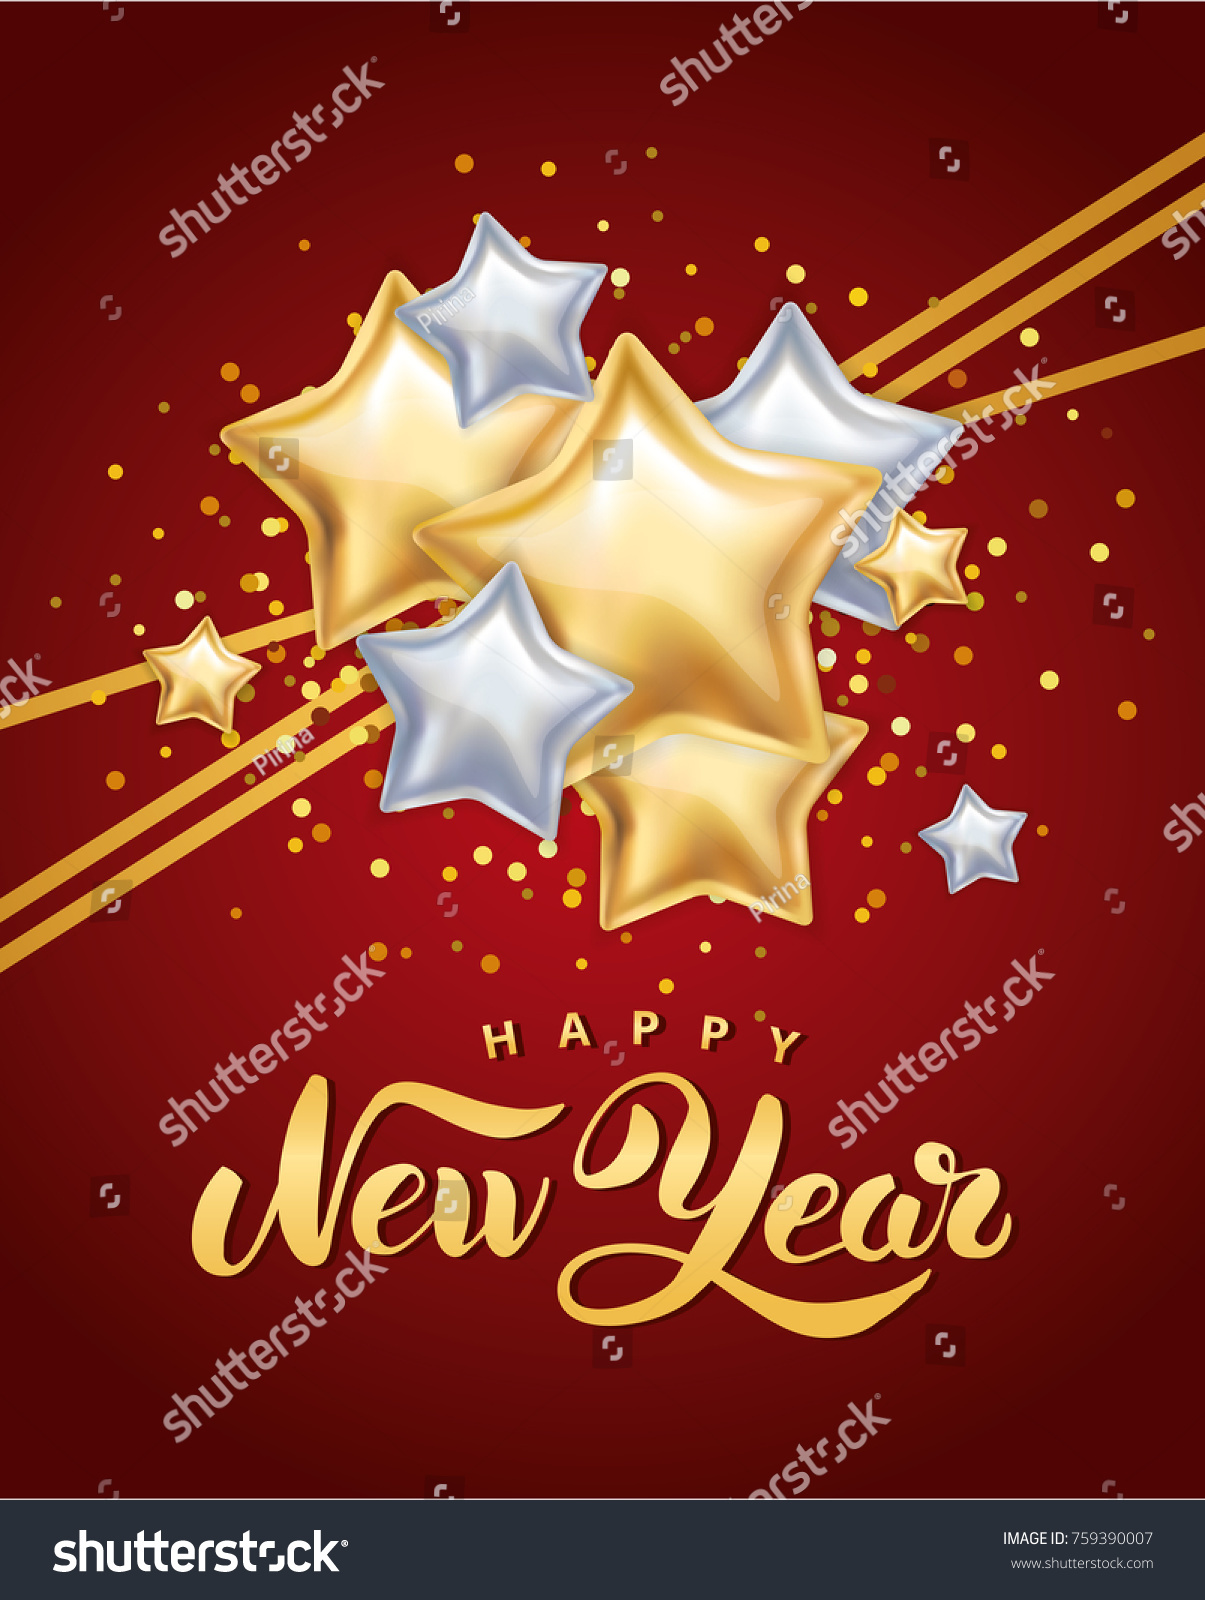 gold silver star happy new year greeting card invitation background event christmas